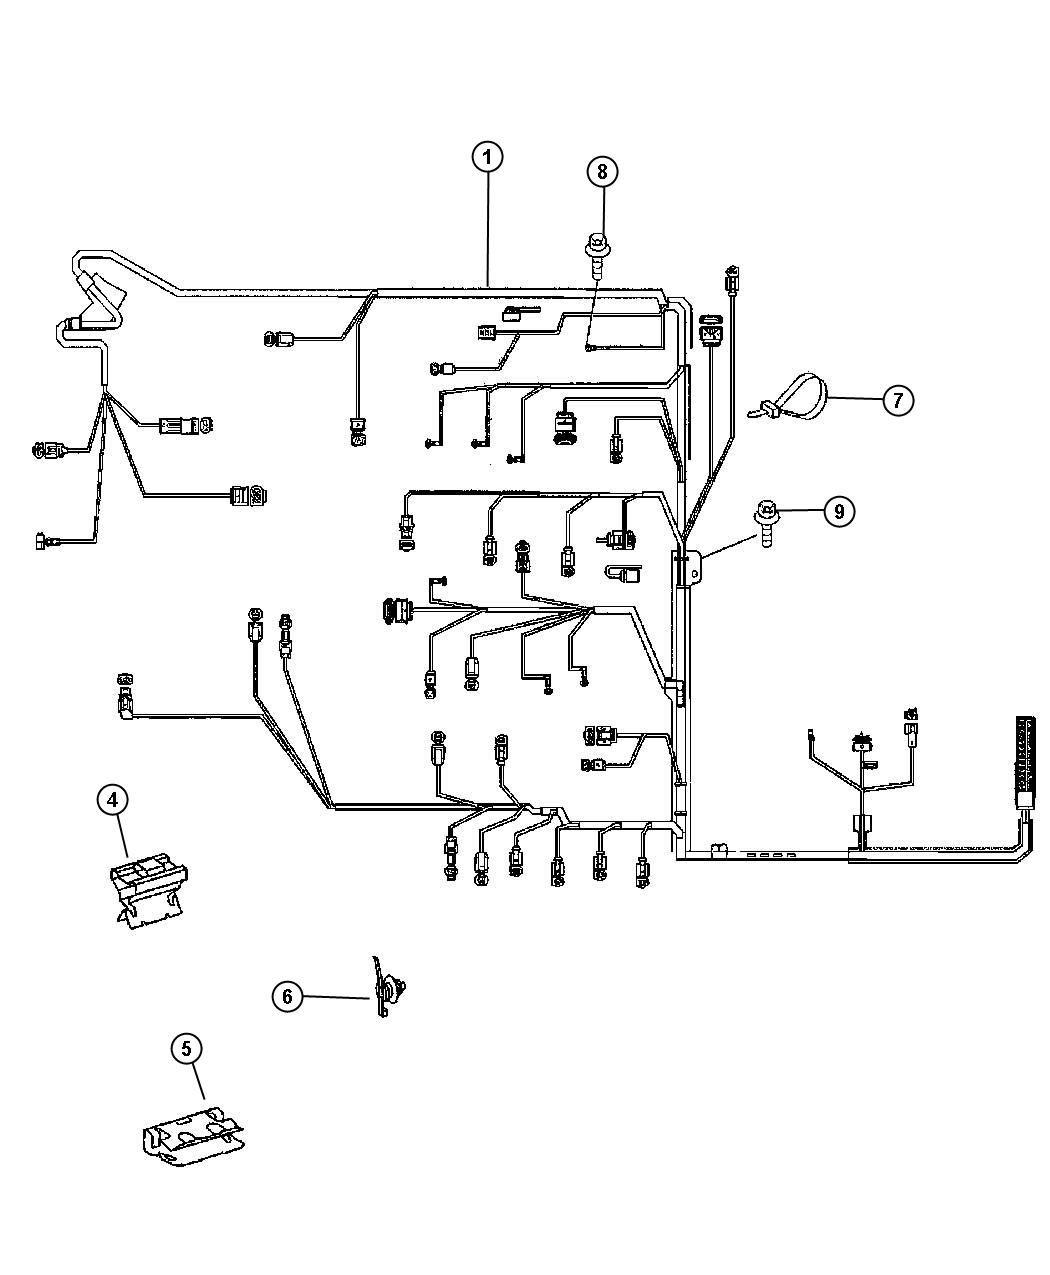 2000 dodge neon starter wiring diagram